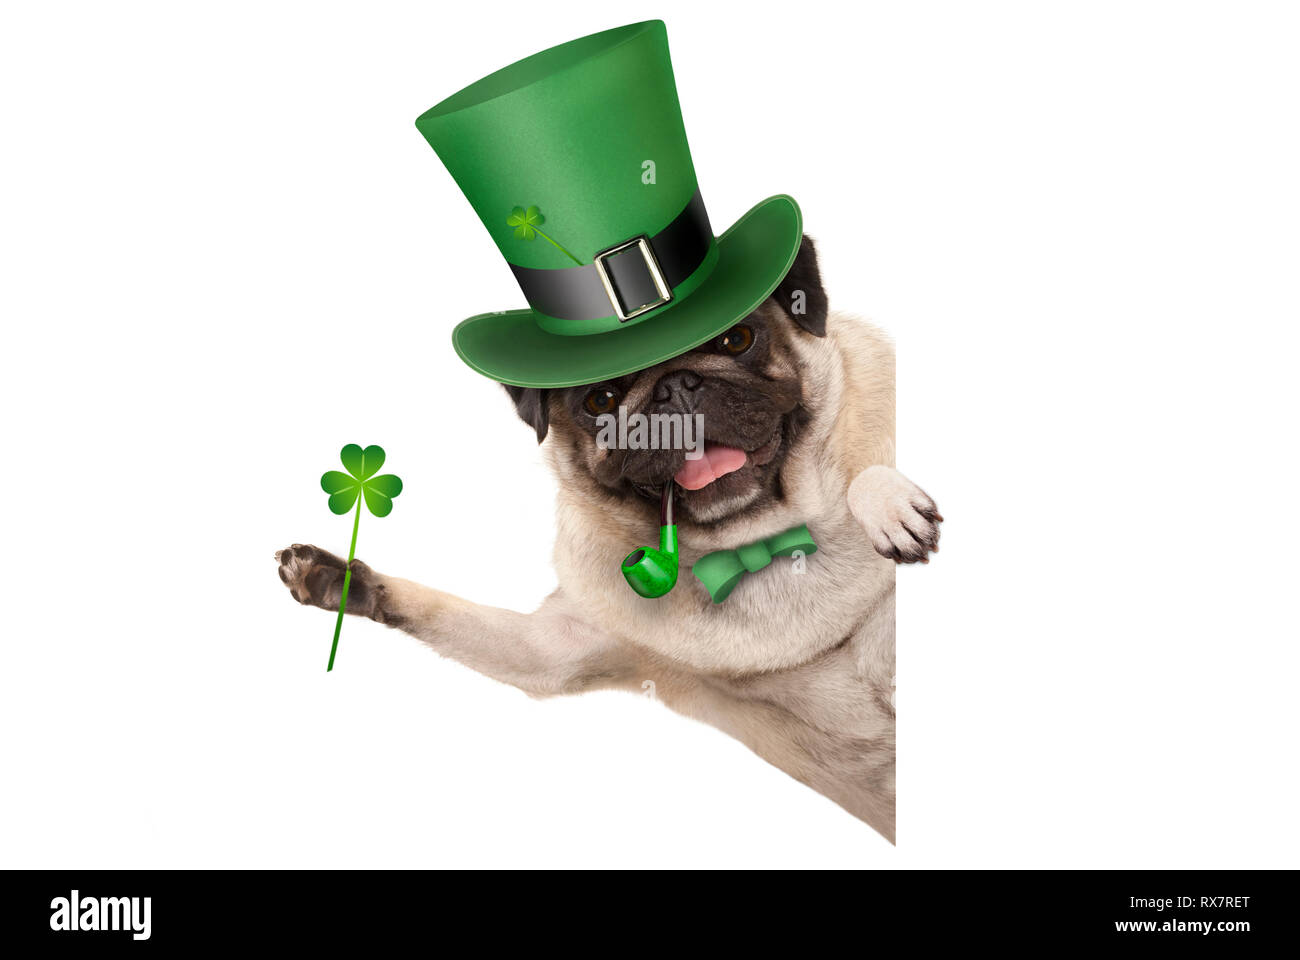 st patricks day pug puppy dog with green leprechaun hat and pipe, holding up shamrock clover, smiling sideways, isolated on white background Stock Photo